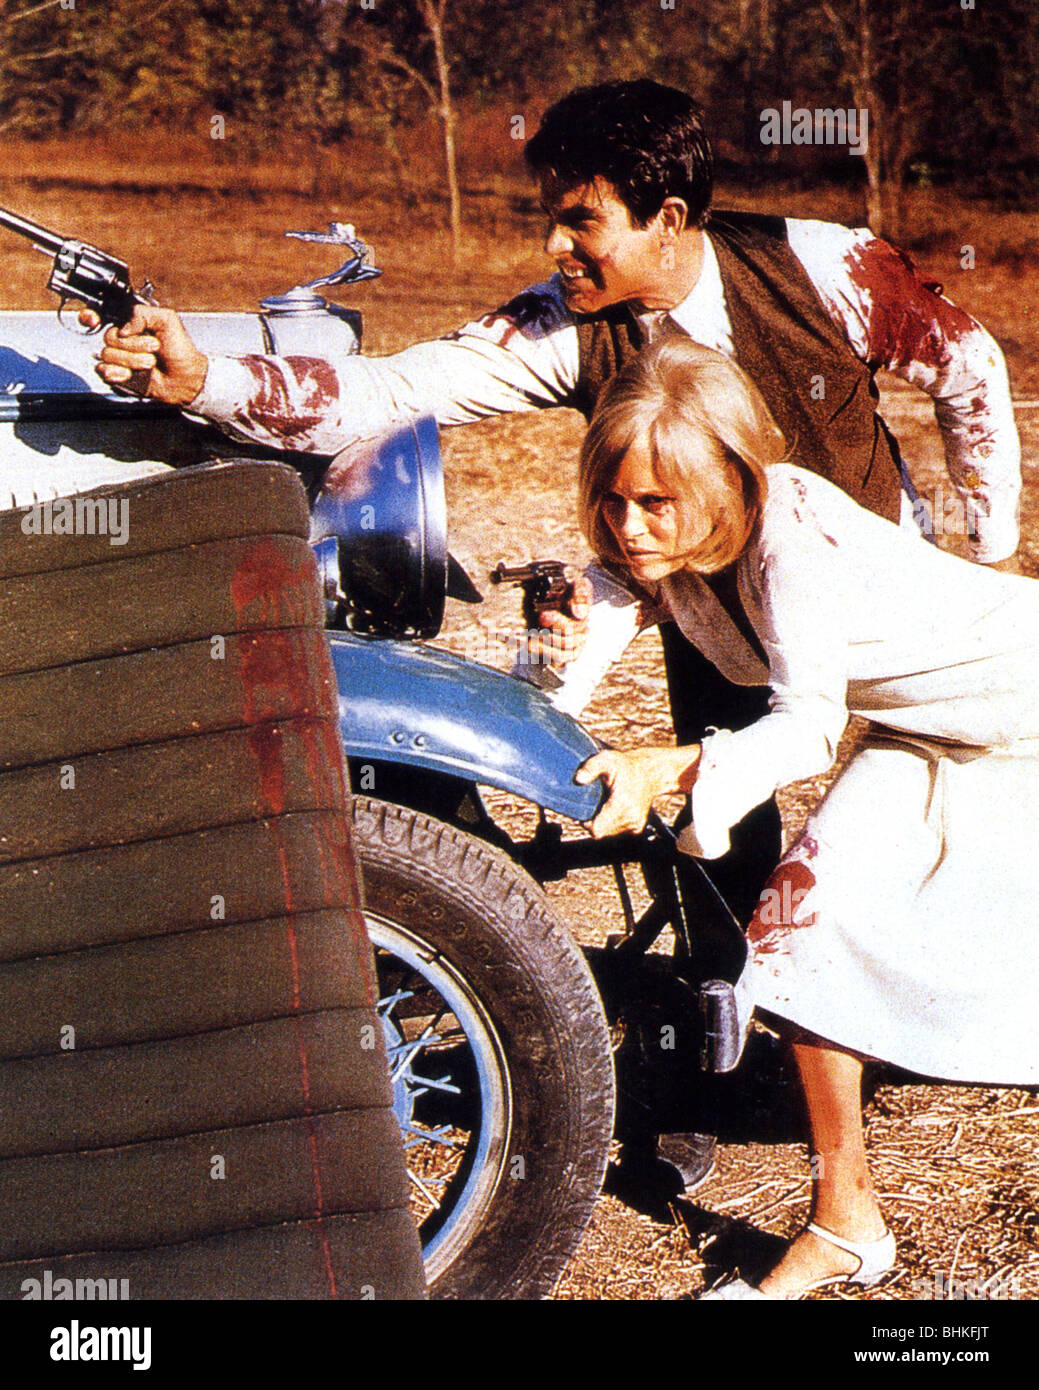 BONNIE AND CLYDE - 1967 Warner film with Warren Beatty and Faye Dunaway - Stock Image